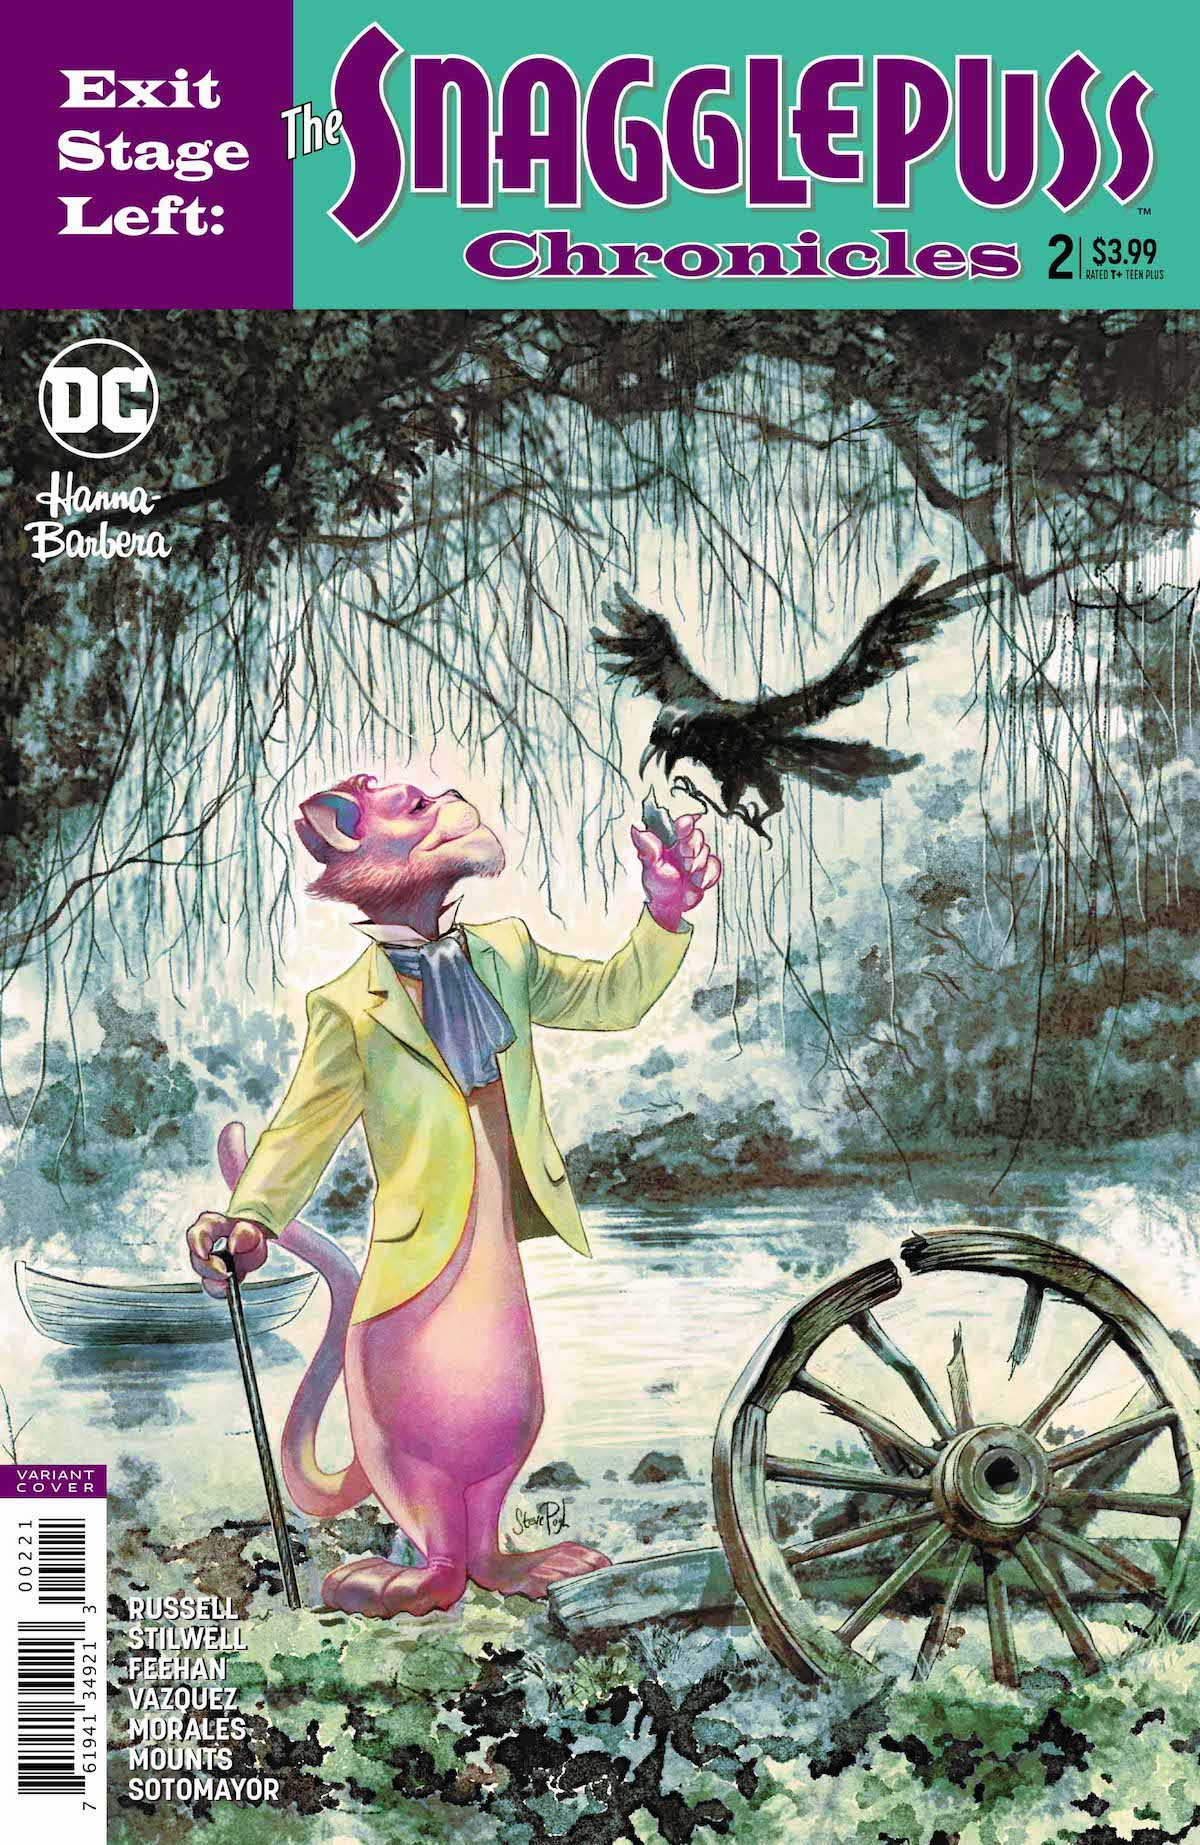 Exit Stage Left: The Snagglepuss Chronicles #2 variant cover